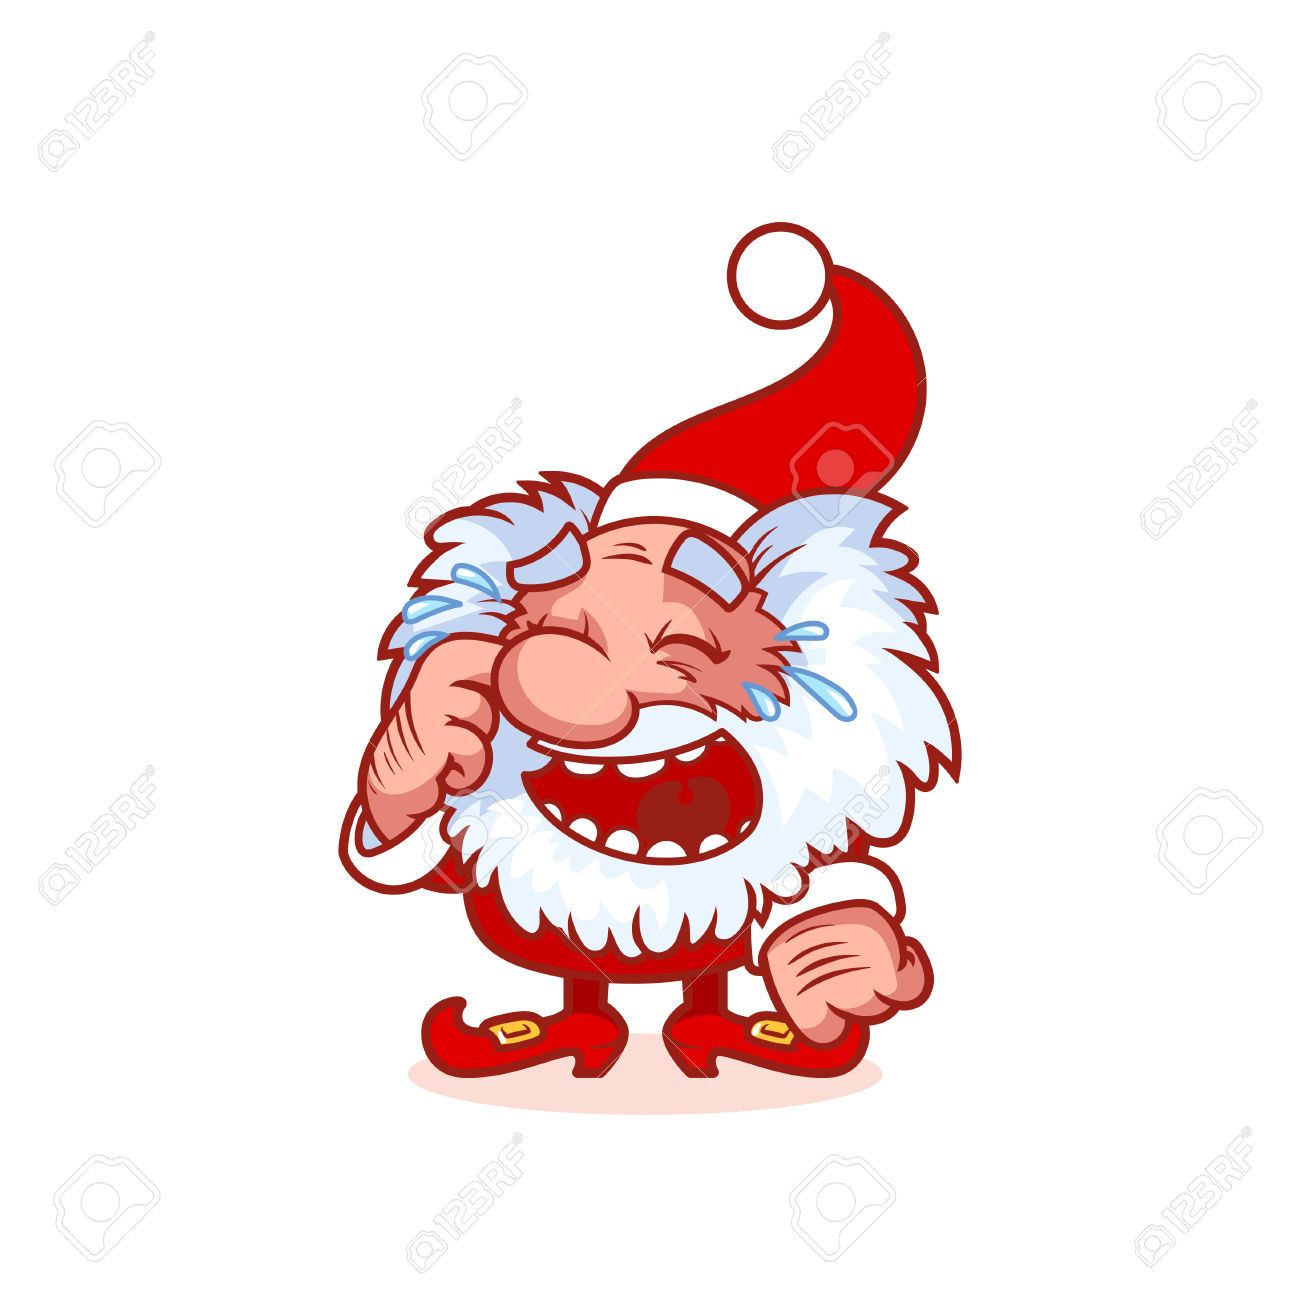 Laughing character clipart clip library library Laughing Christmas Gnome In Red Costume. Funny Cartoon Character ... clip library library